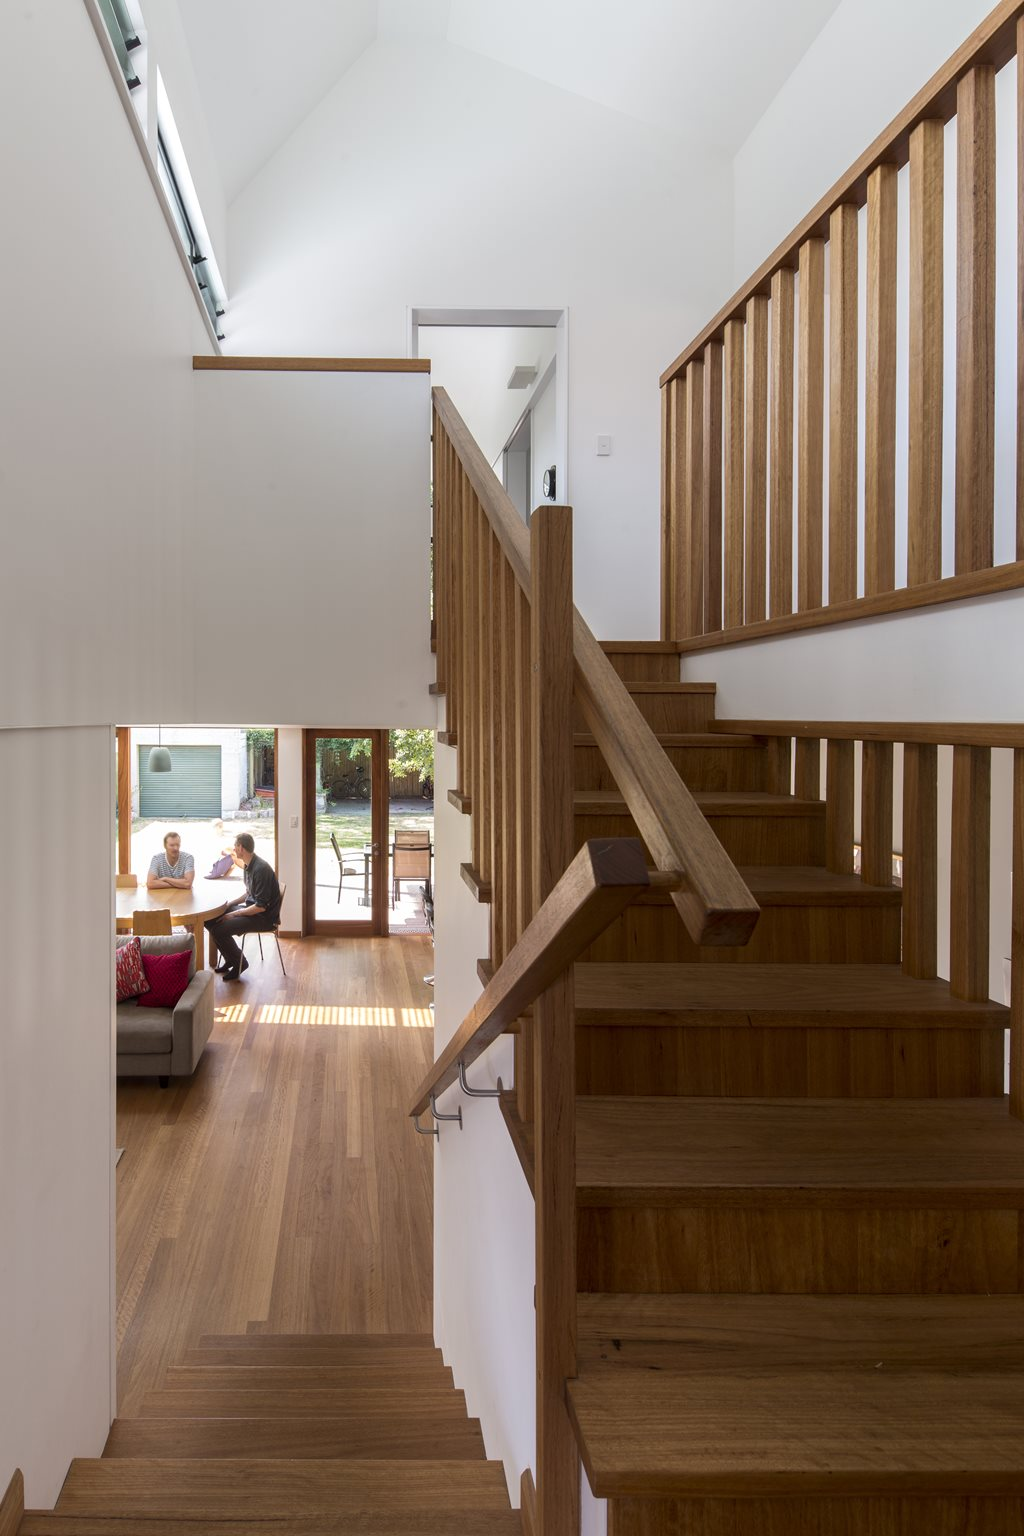 The Importance Of Building Small Where Space Is Available